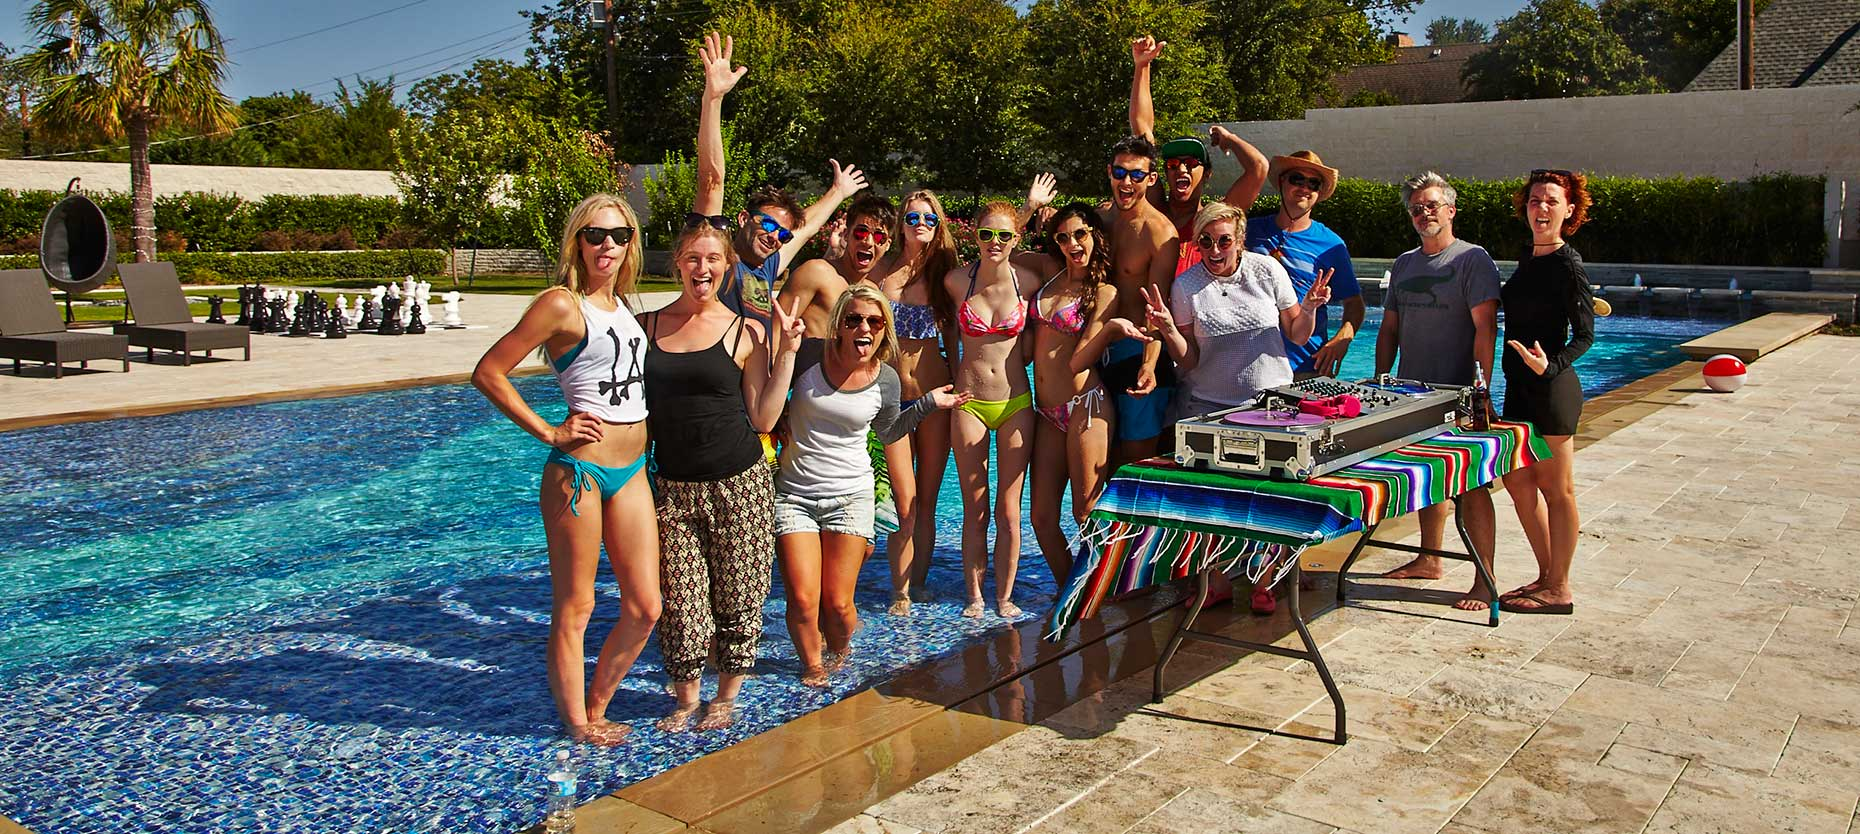 POOL-PARTY_4375